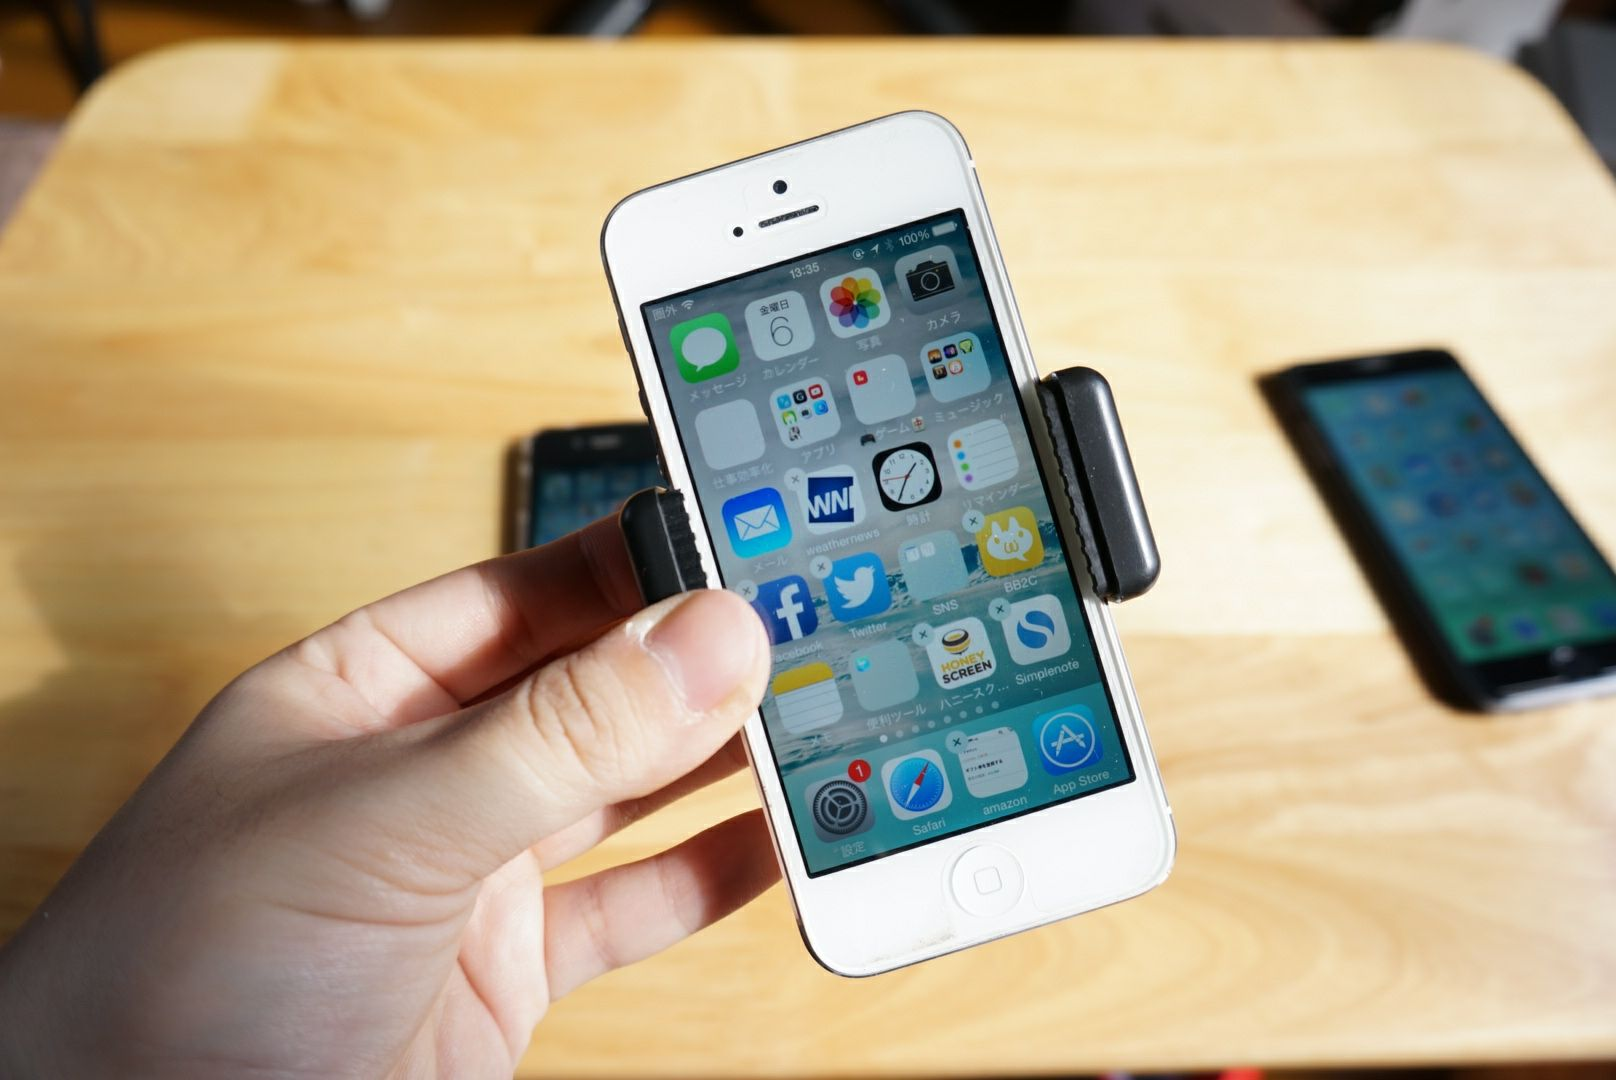 2WAY Mount iPhone5 2